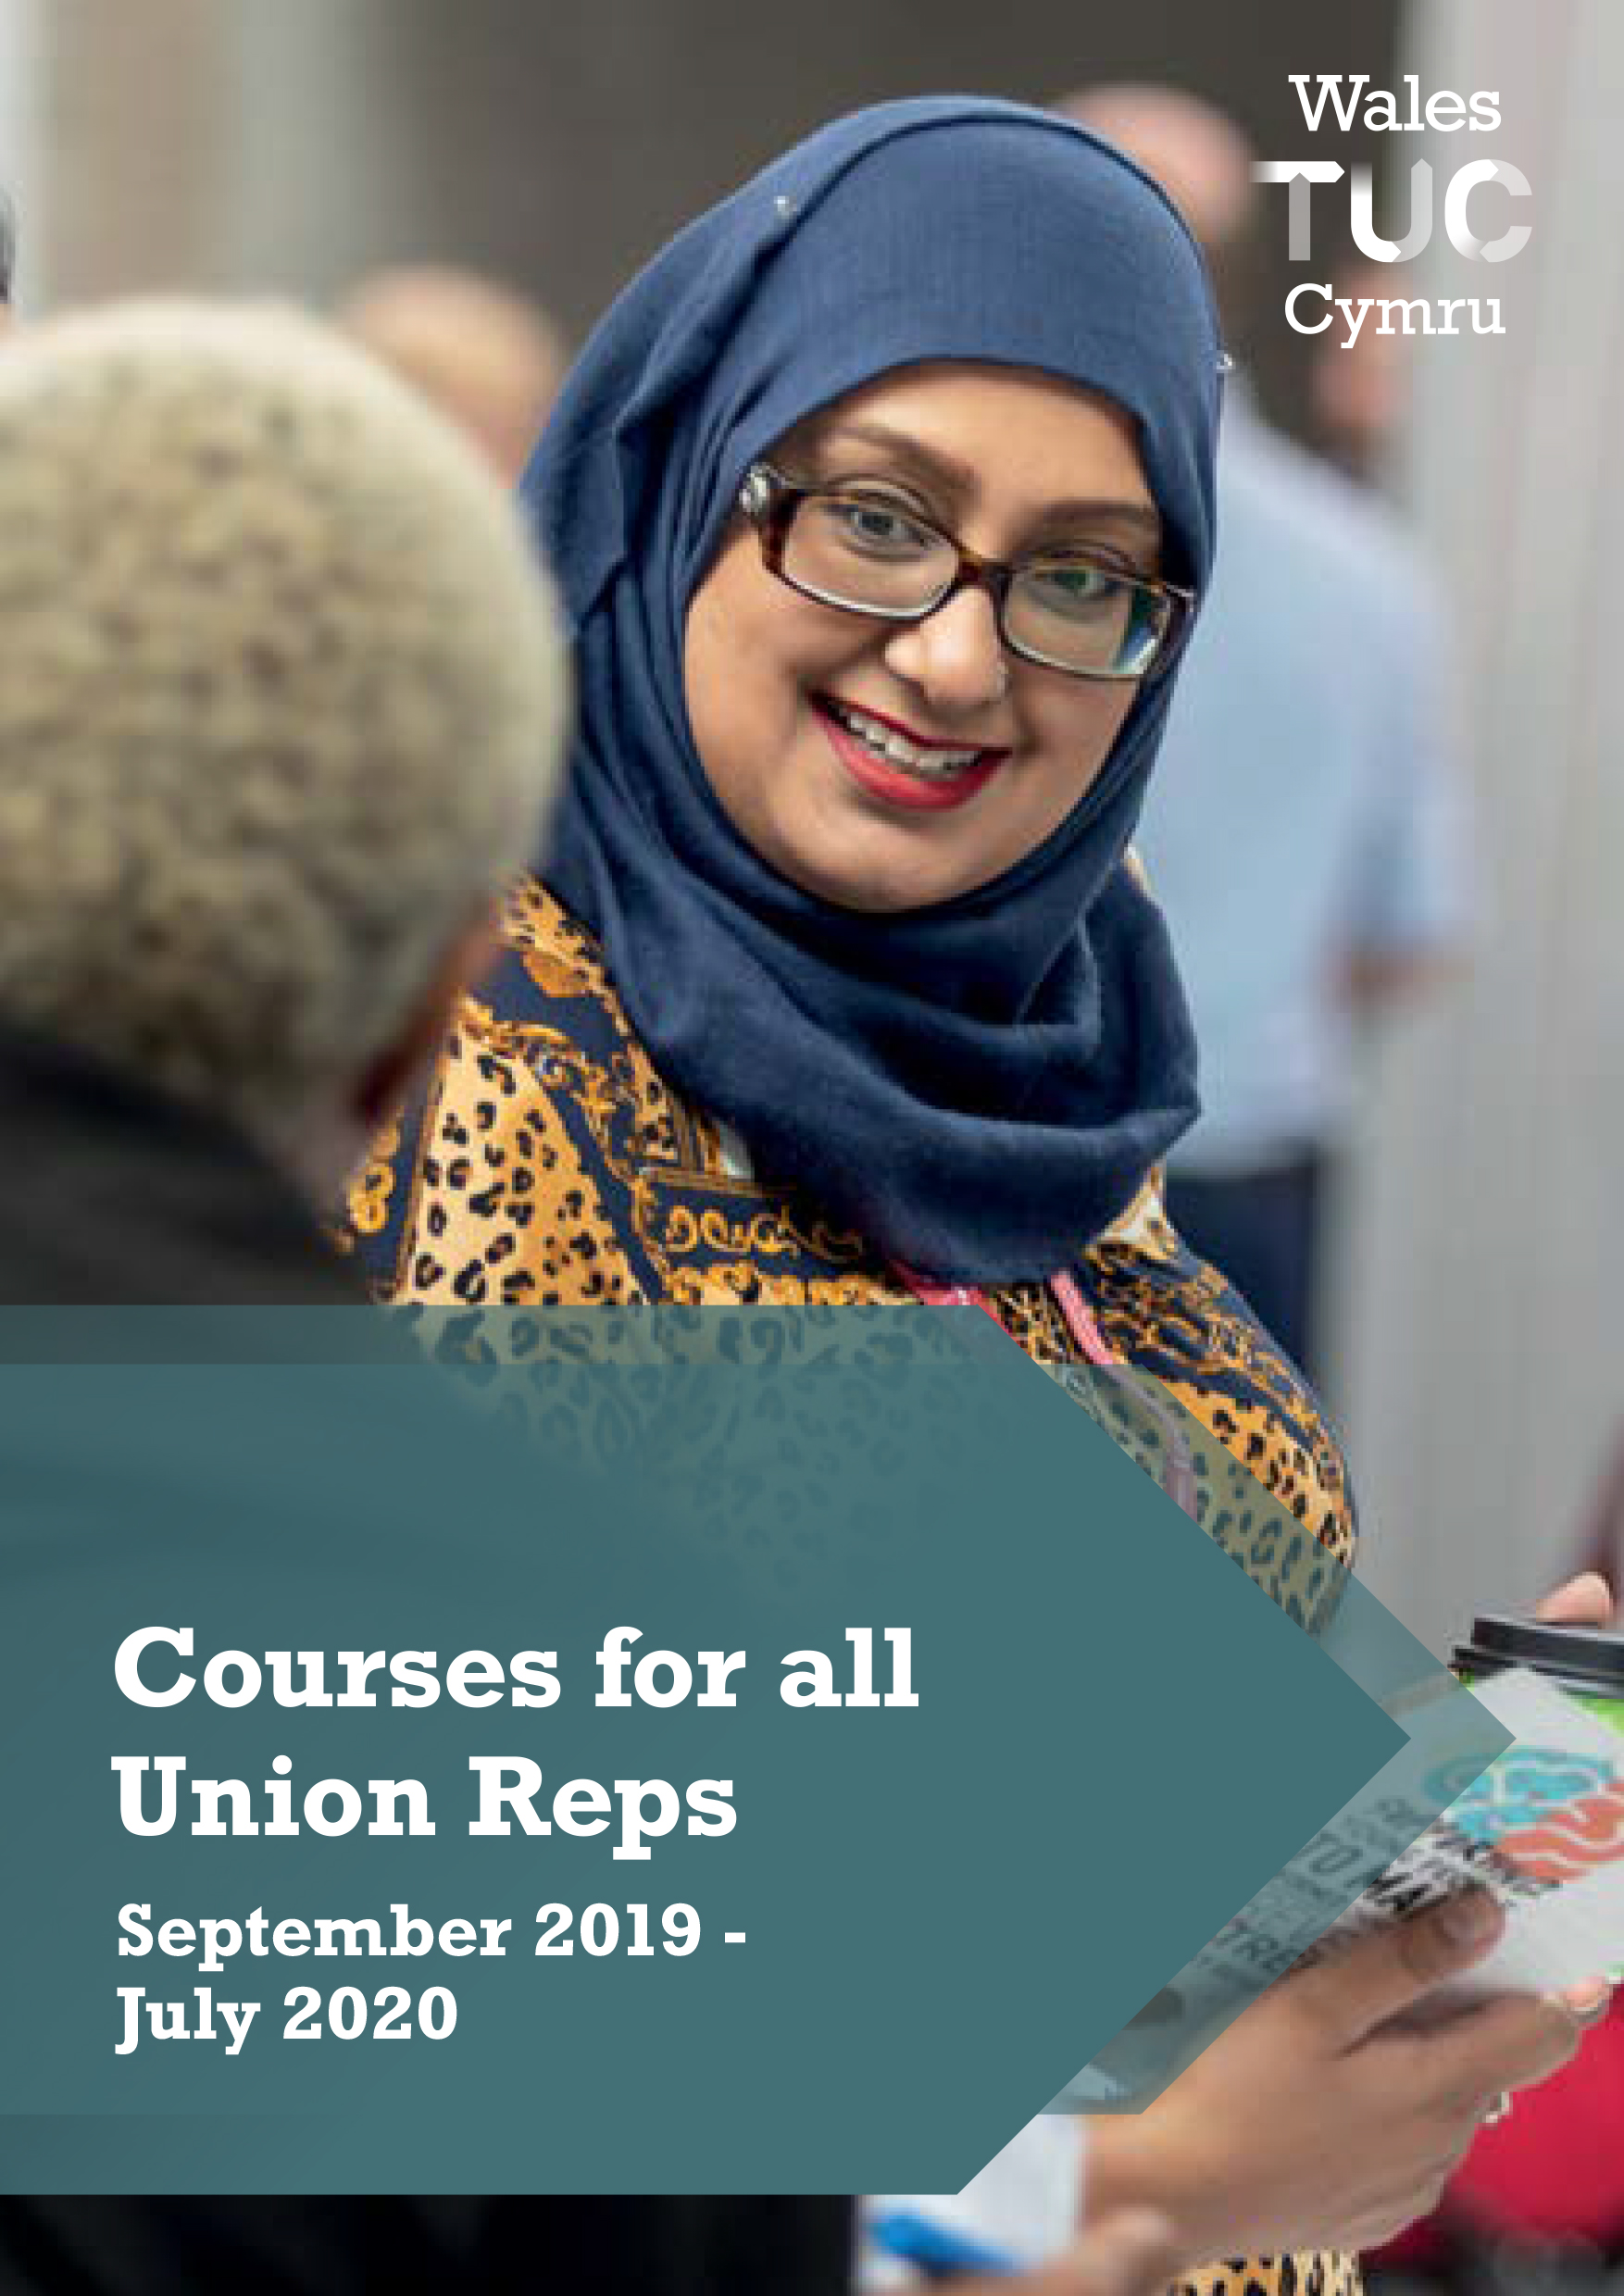 Wales TUC Course Directory Cover